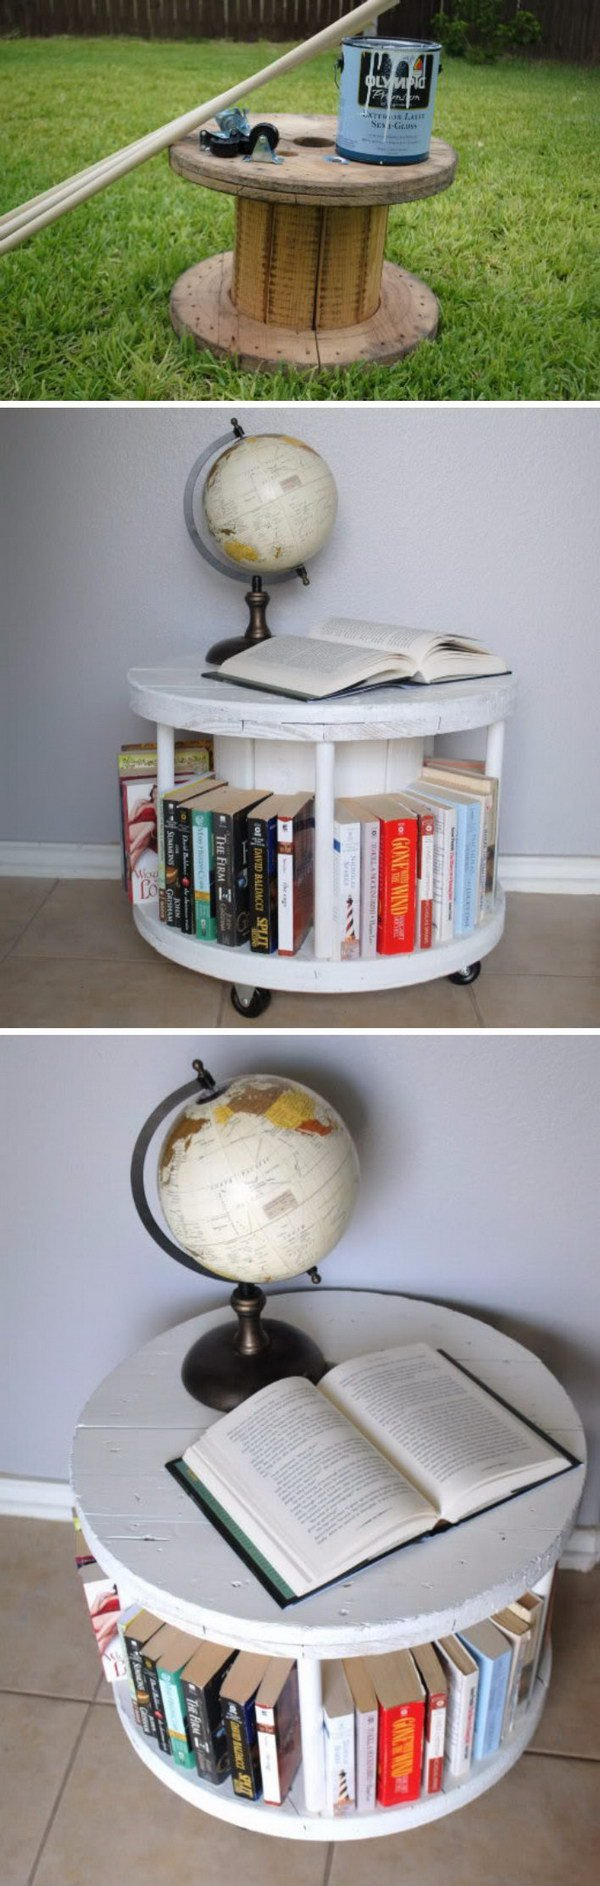 40 Diy Furnture Repurposing For The Home Pinterest Easy Furniture And Crafts